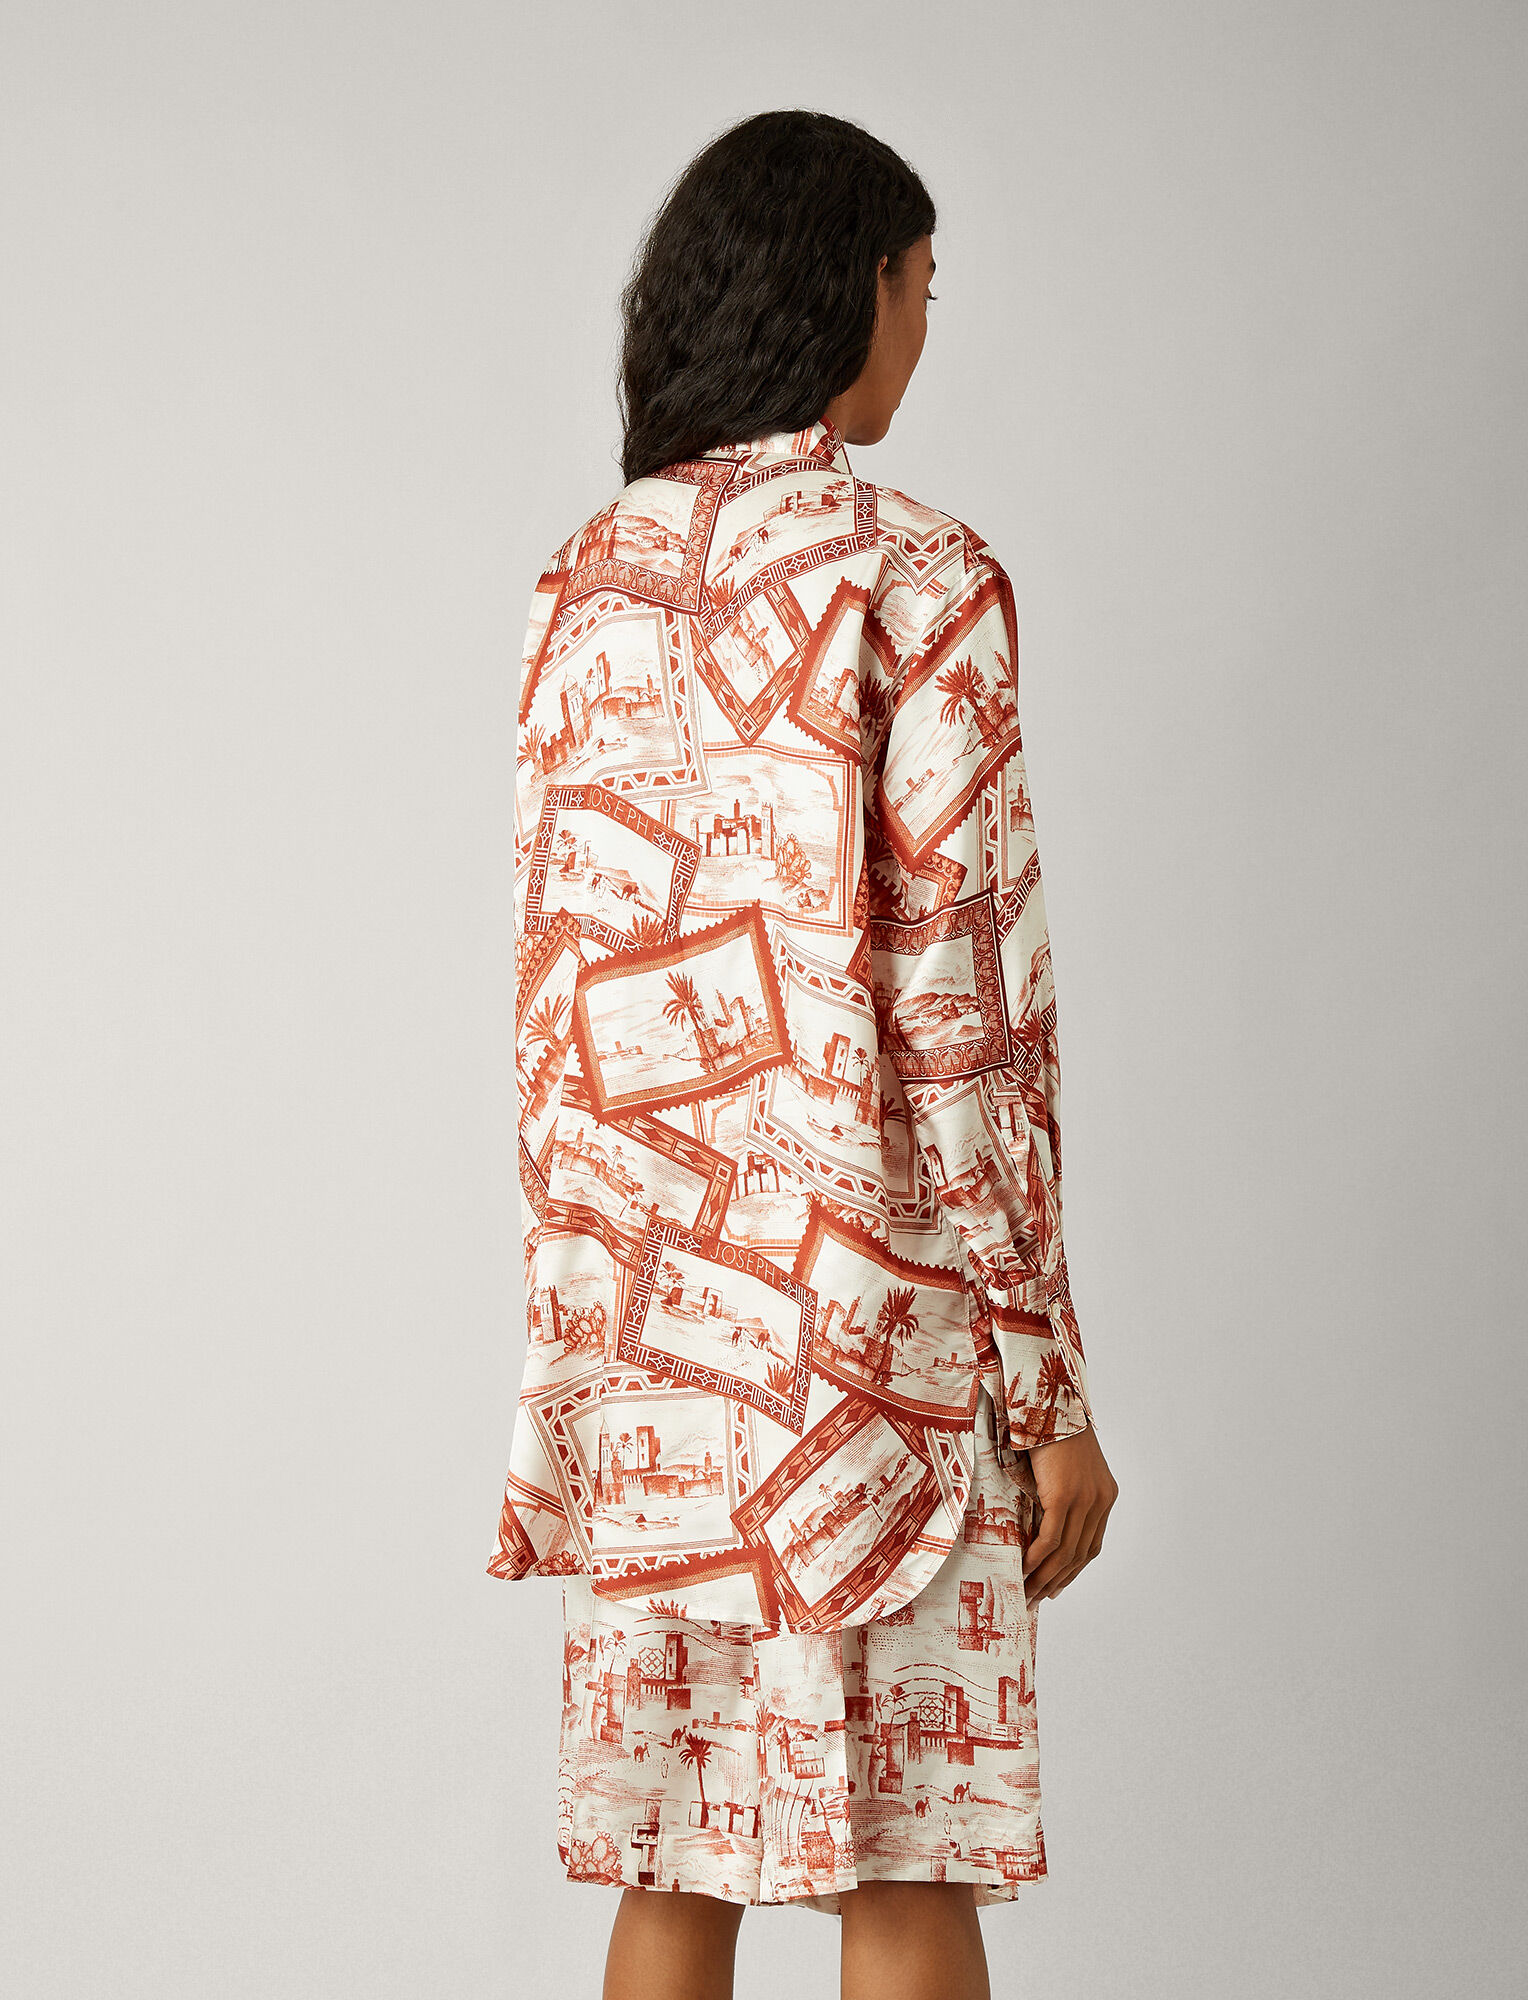 Joseph, Dawson Big Stamp Print Blouse, in RUST